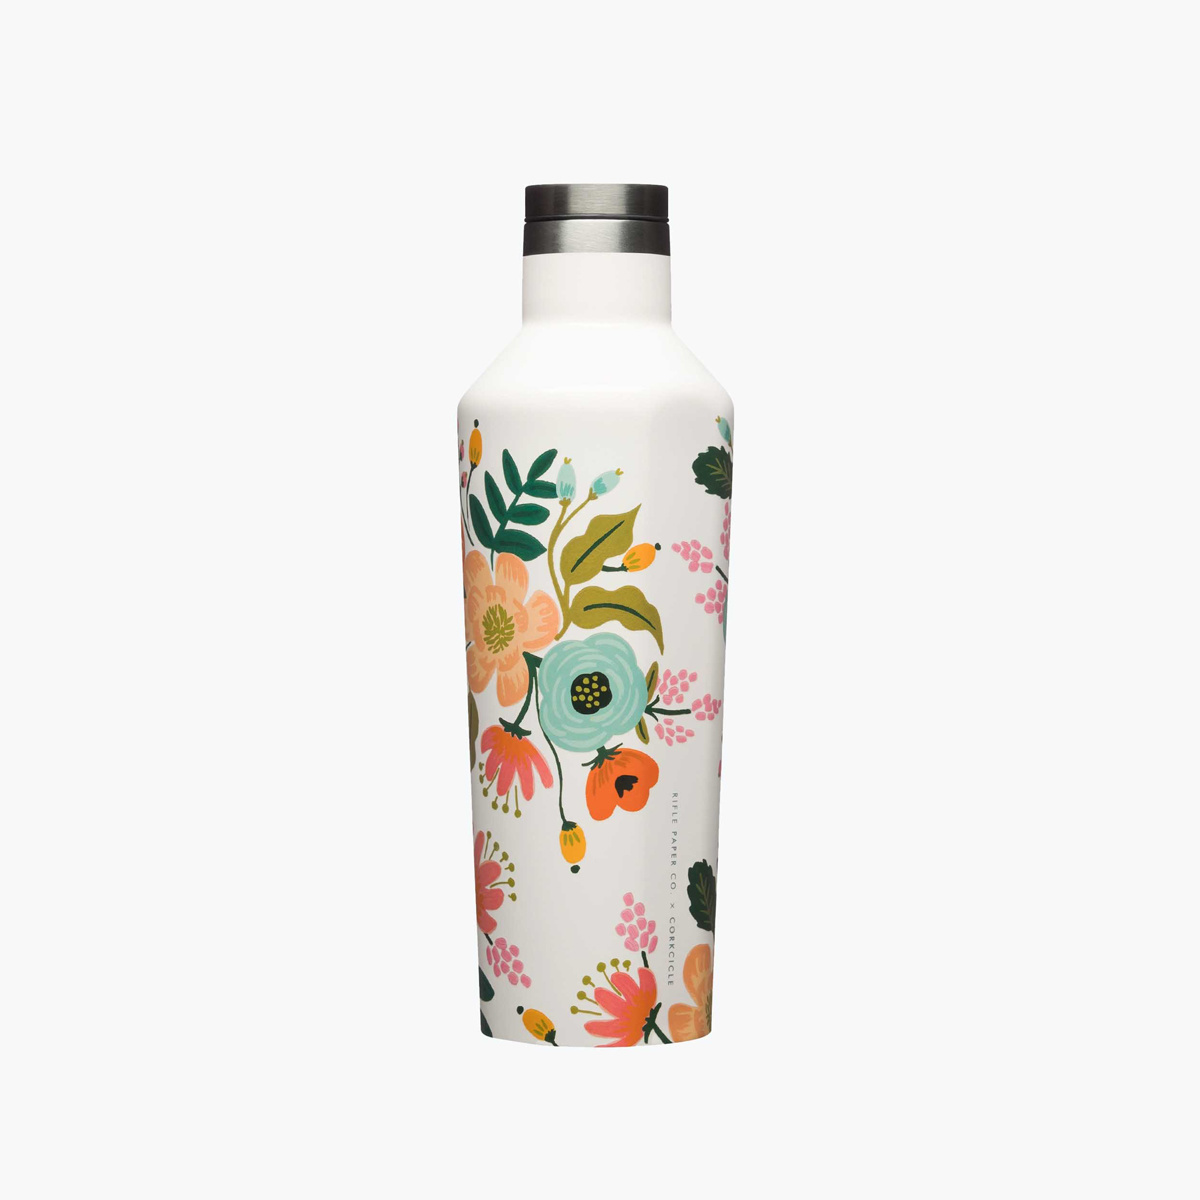 Corkcicle - CO Corkcicle x Rifle Paper Co - Cream Lively Floral Canteen